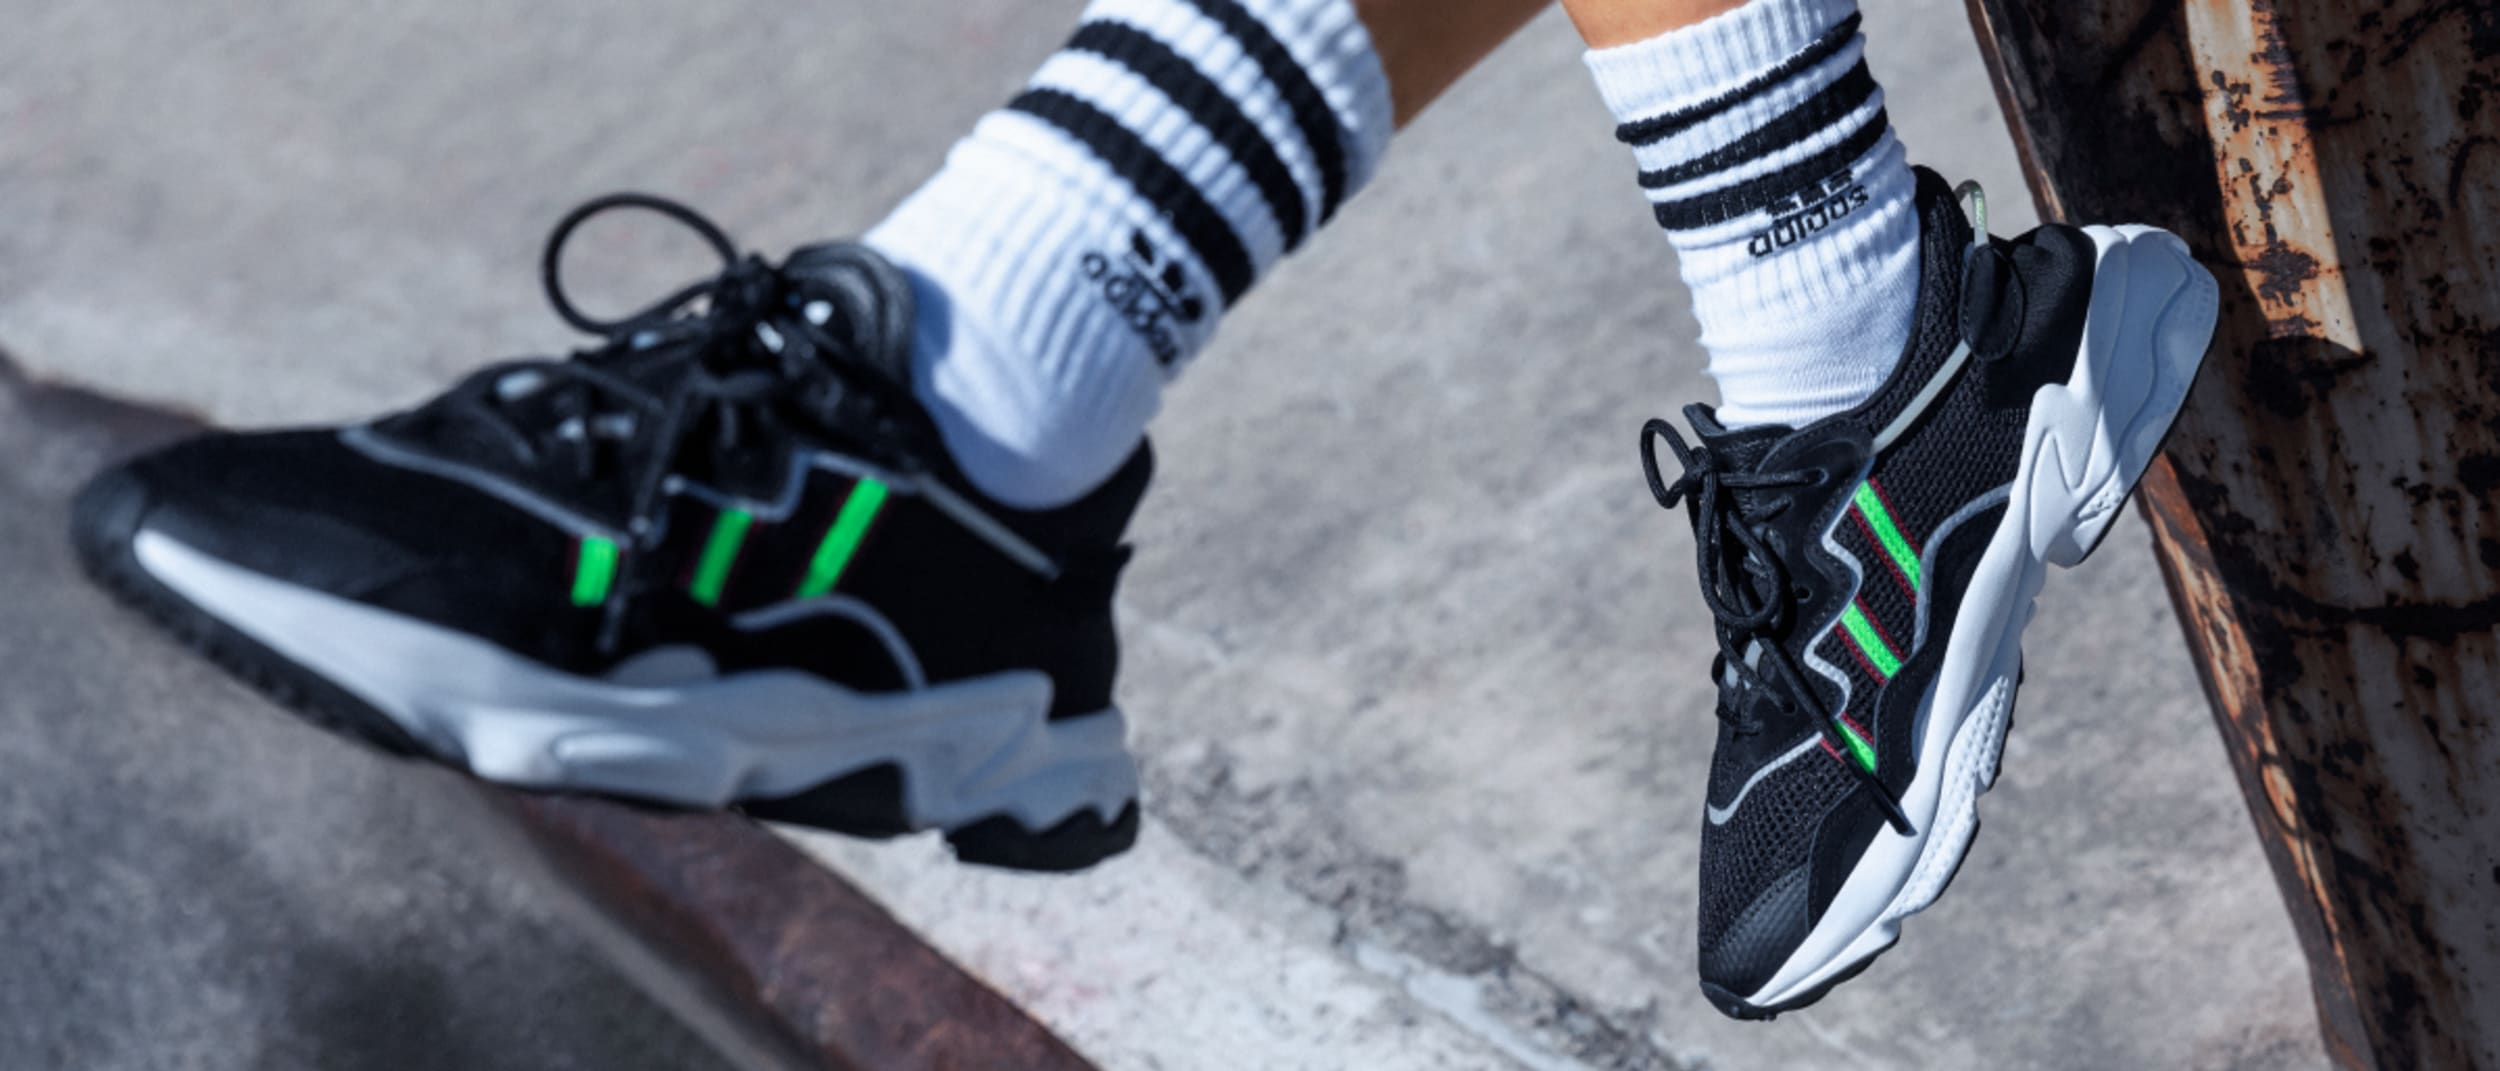 adidas Originals: new styles from OZWEEGO and LXCON concepts